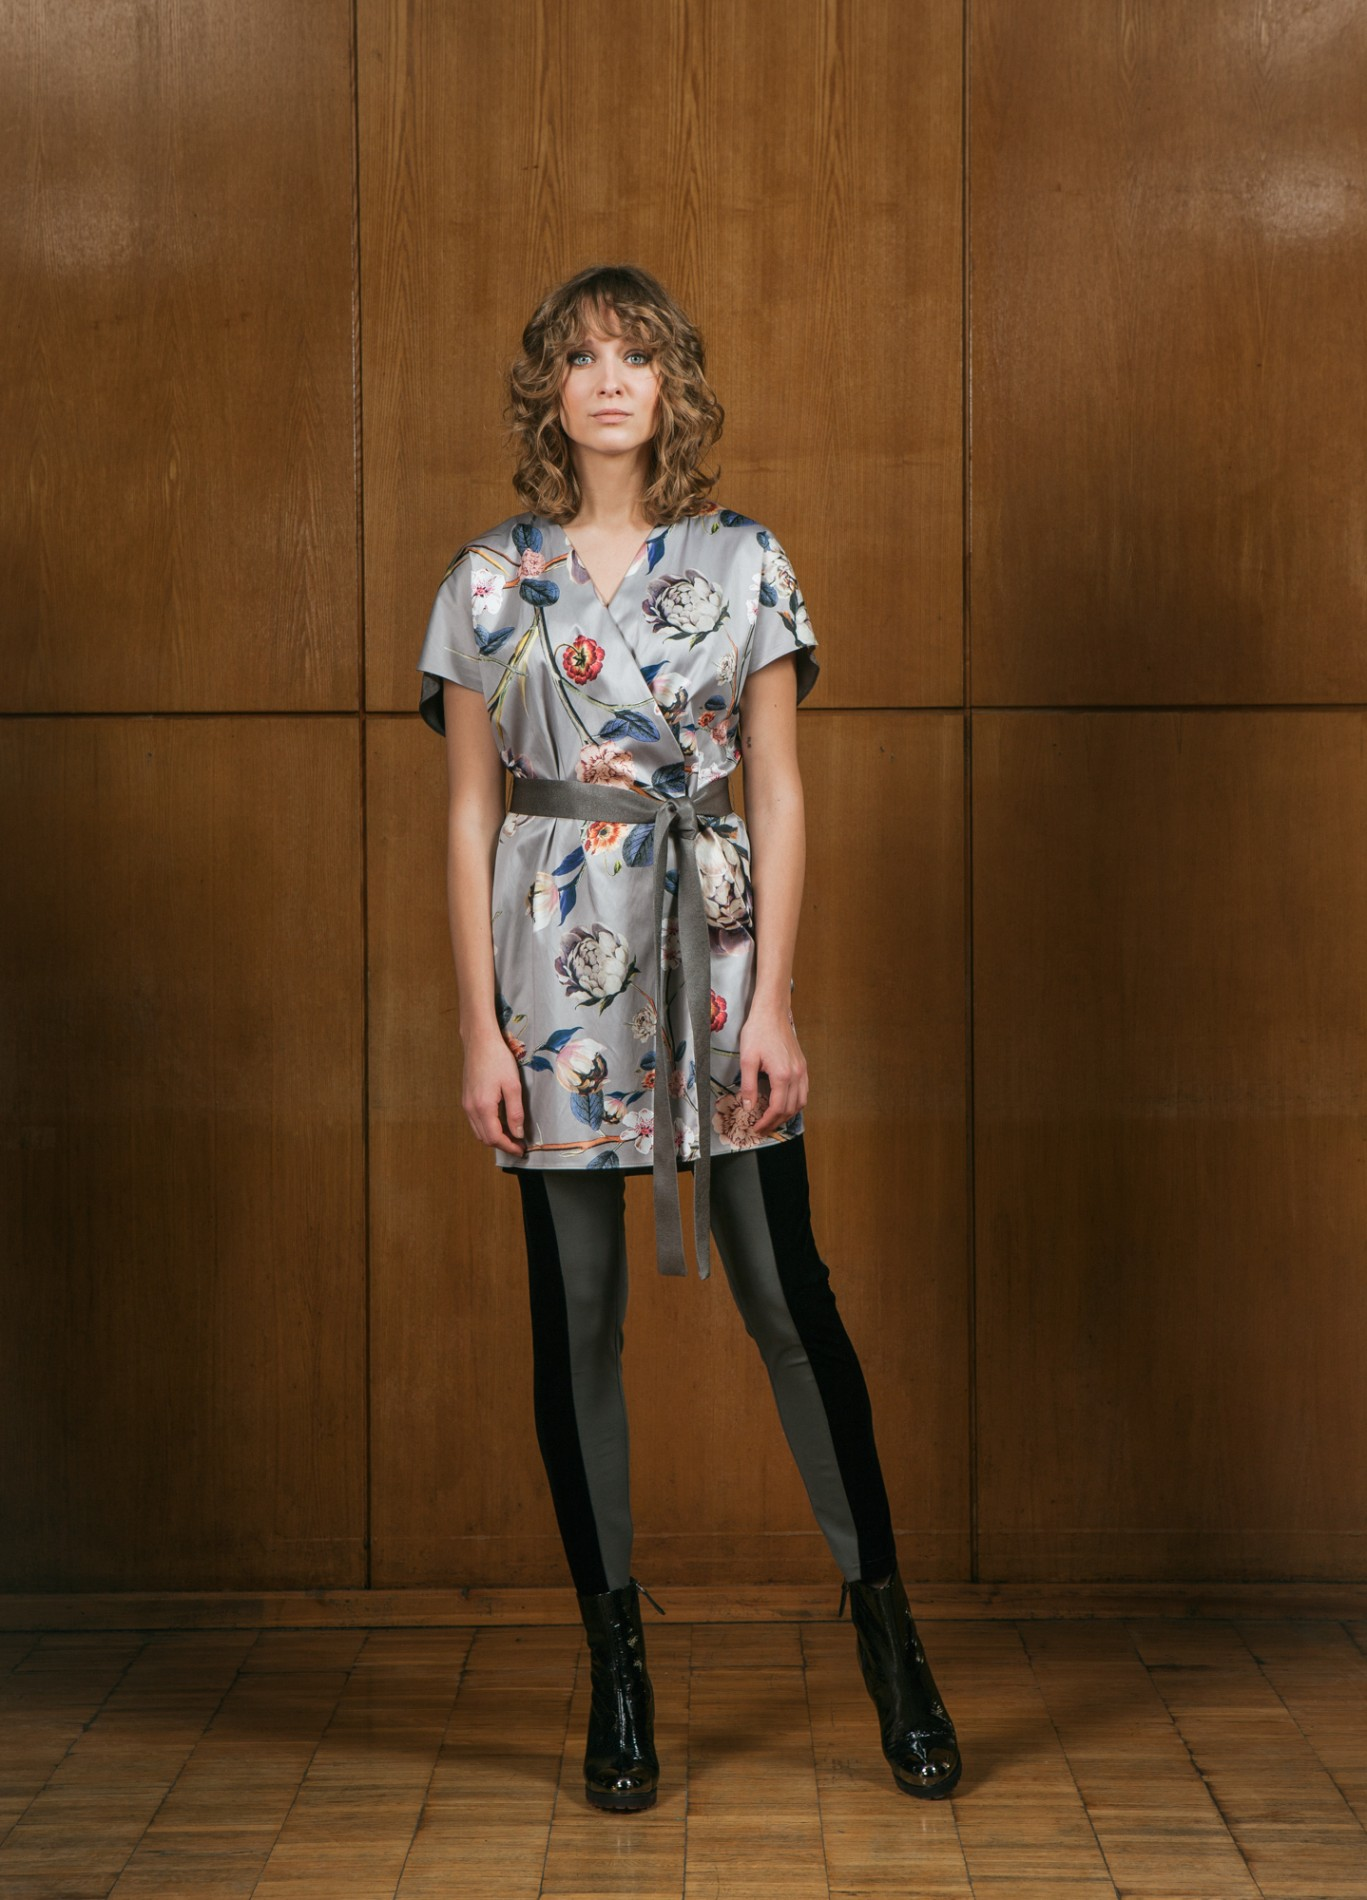 TOPAZ Wrap Dress and ONYX Leggings